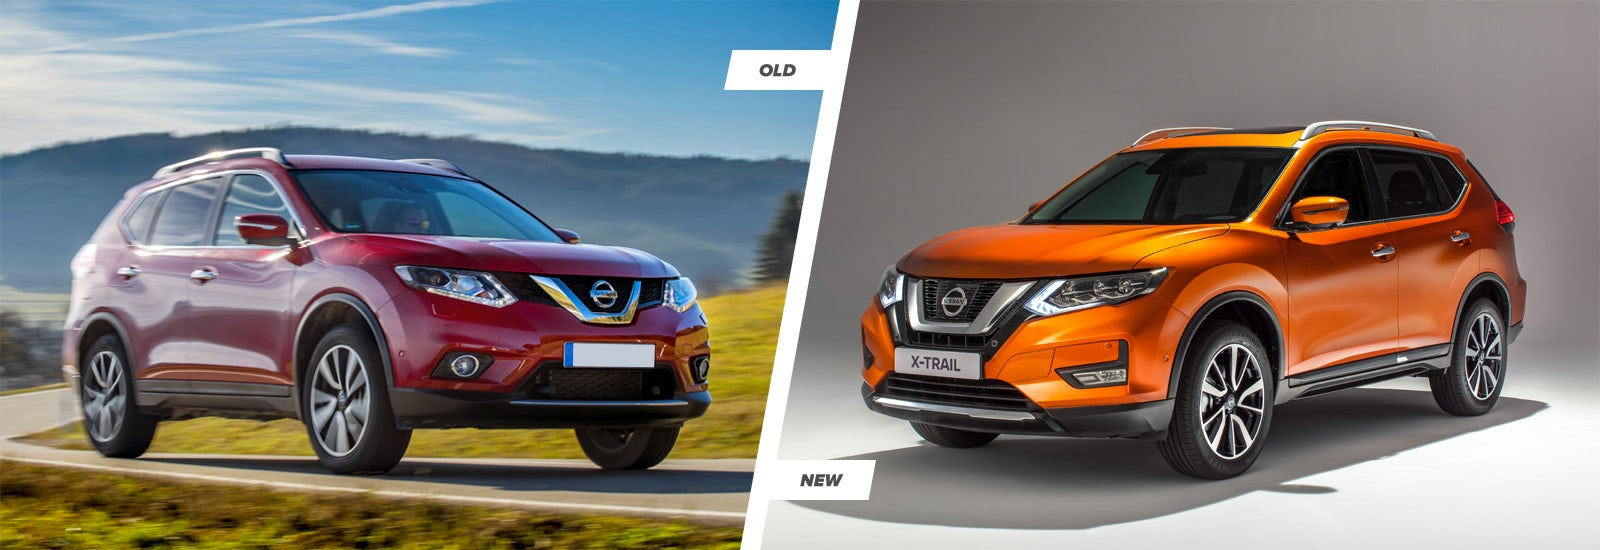 Nissan X-Trail facelift – old vs new guide | carwow